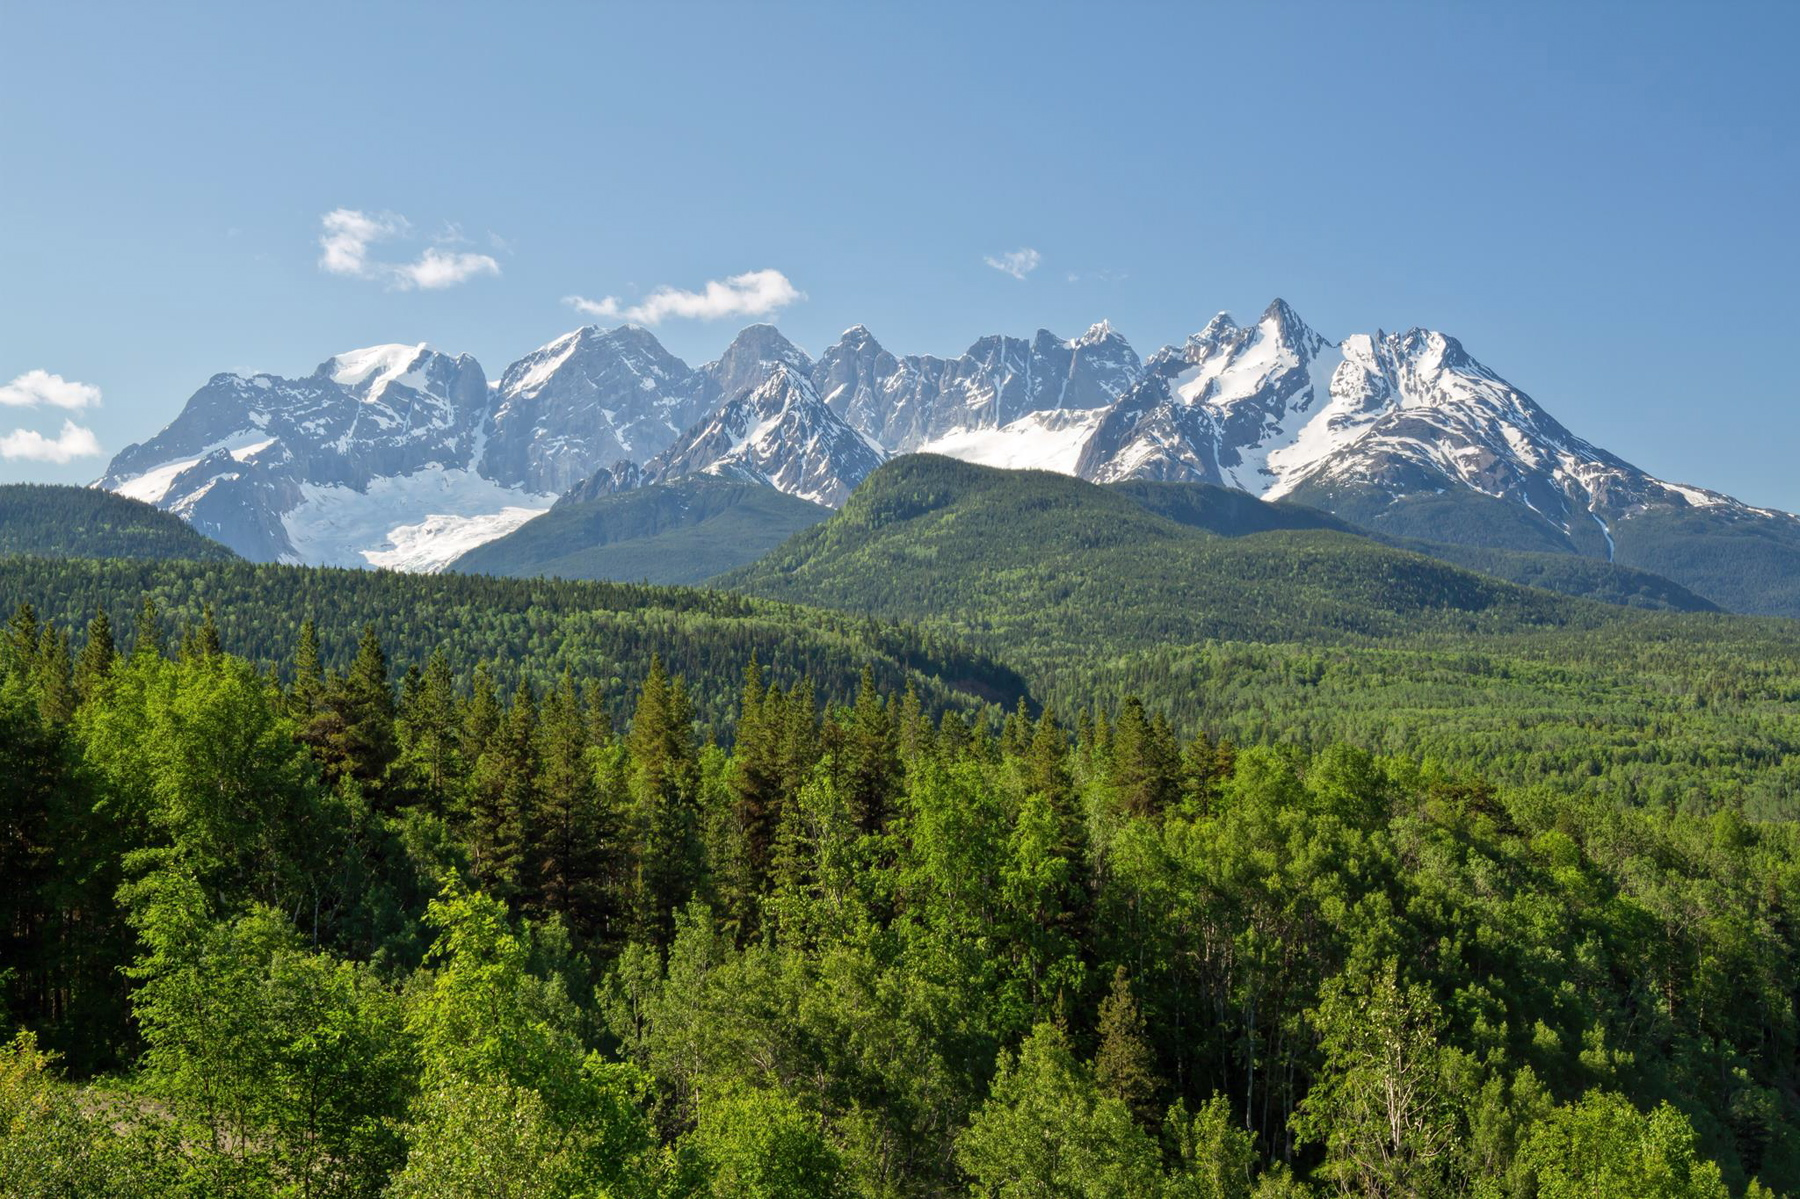 Photo of Seven Sisters Peaks by Janis Morrison, Fresh Air Photography: https://www.flickr.com/photos/freshairphotography/